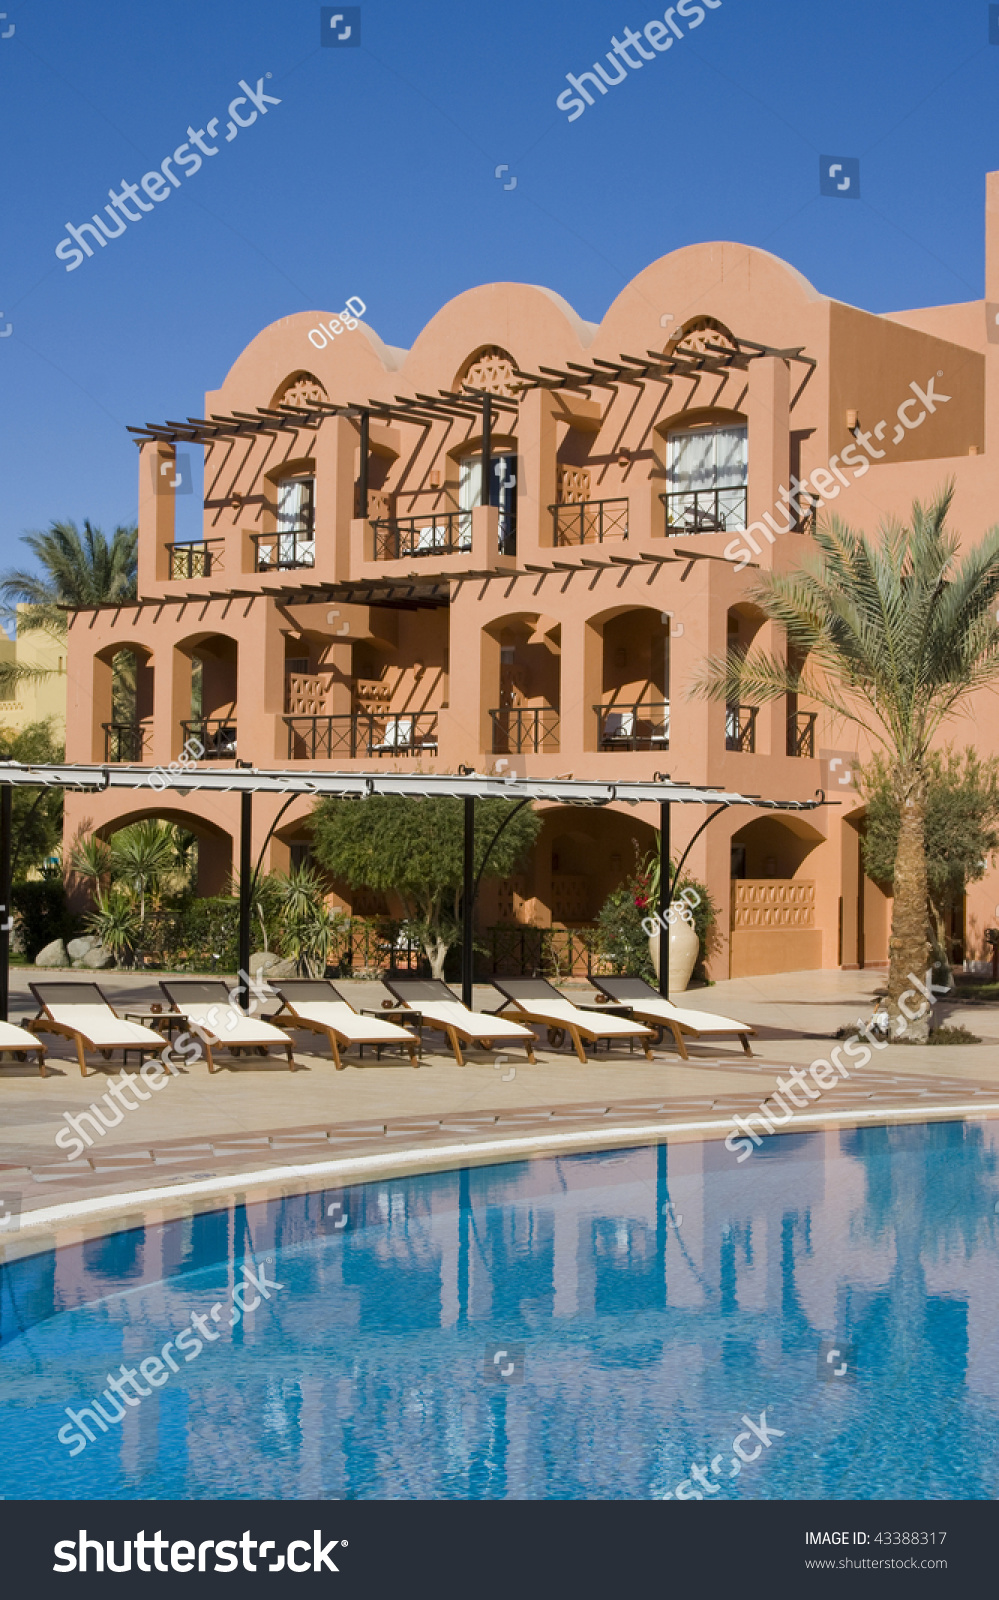 Swimming Pool On A Sunny Day Hurghada City In Egypt